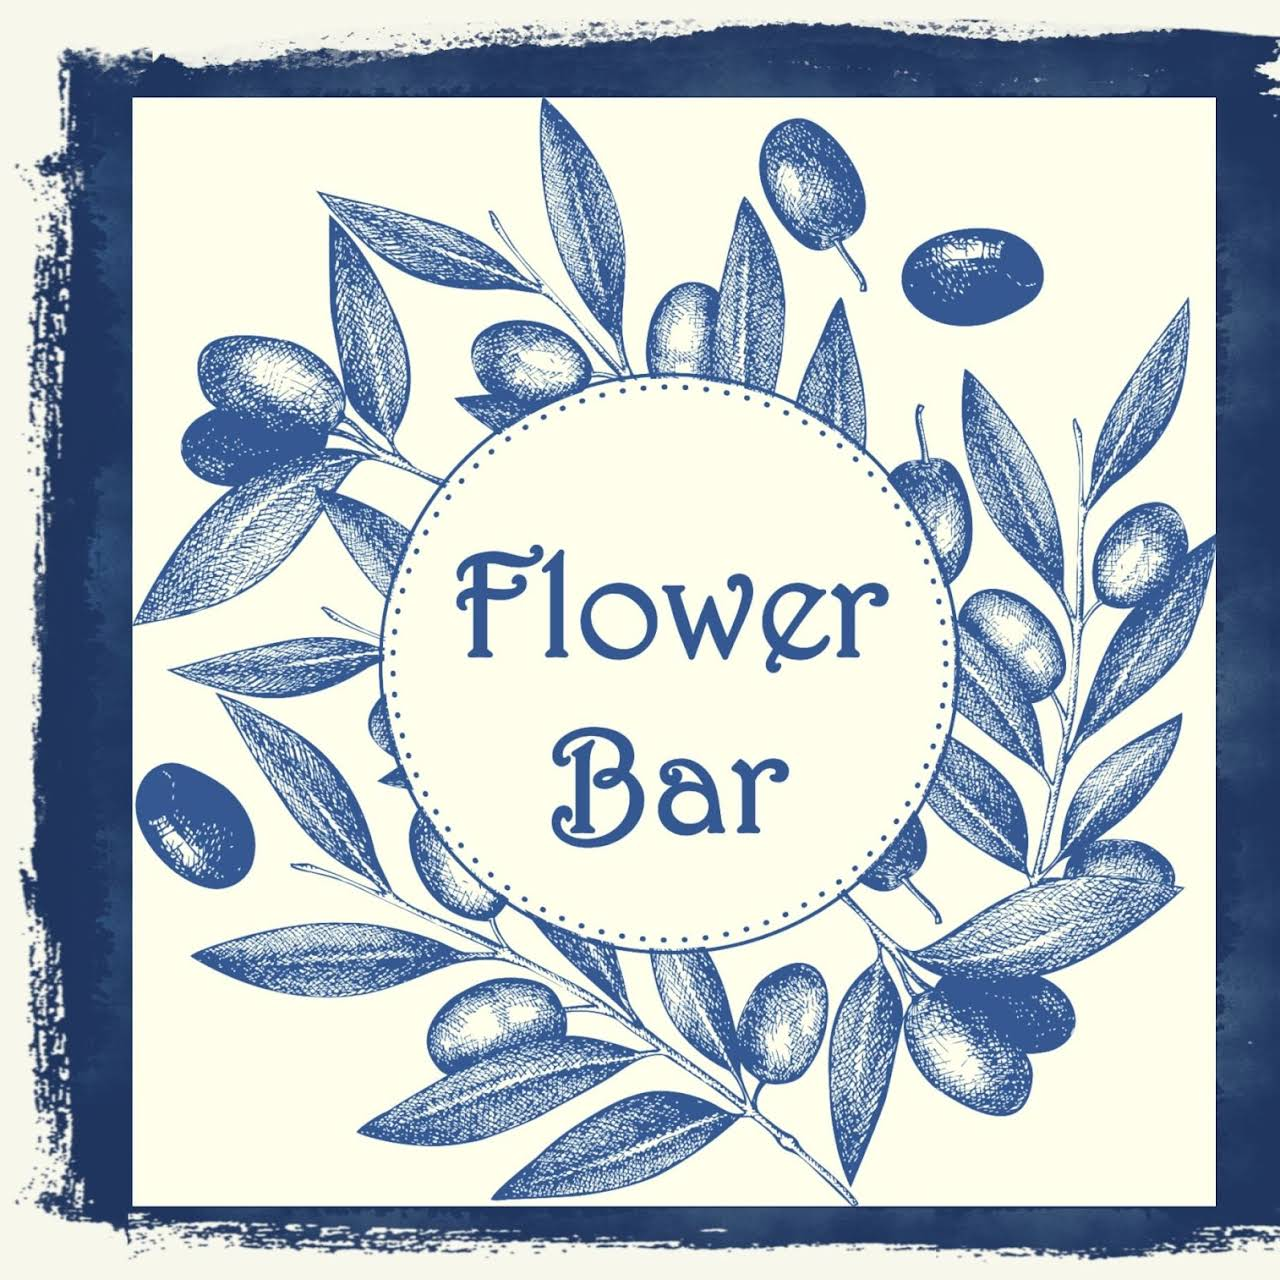 Flower Bar - Florist in Brick